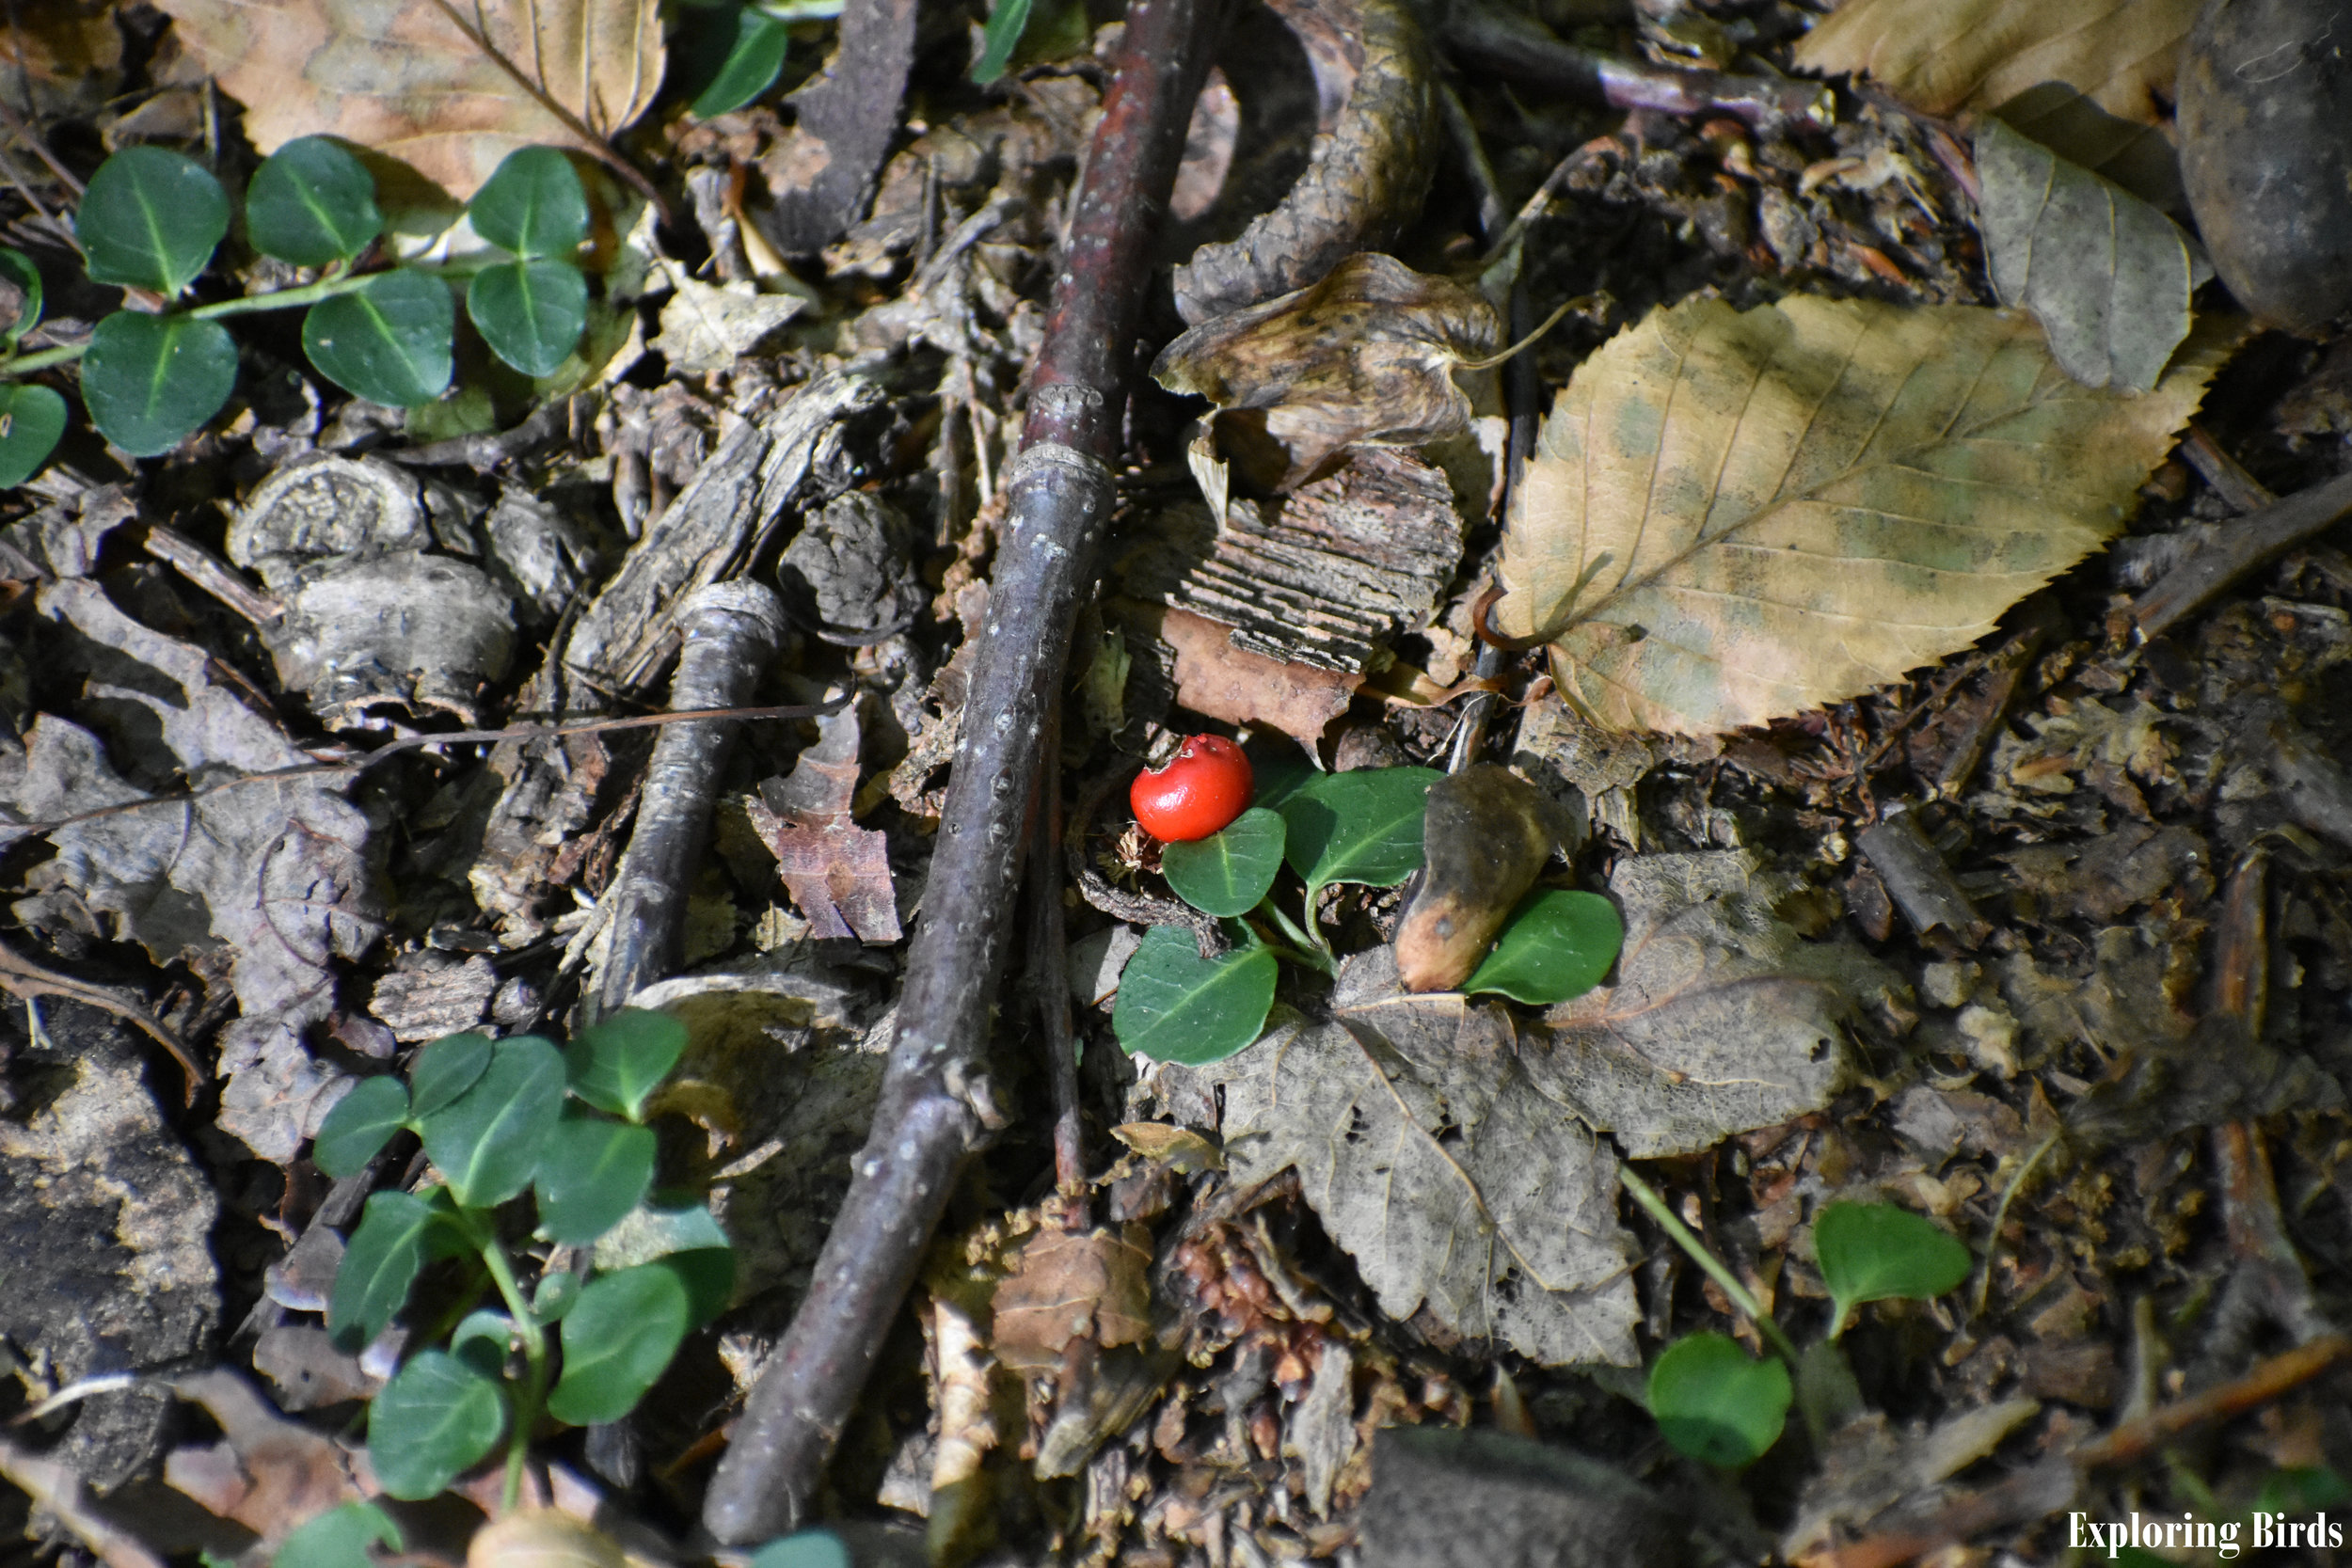 Partridge Berry is a plant that attracts birds